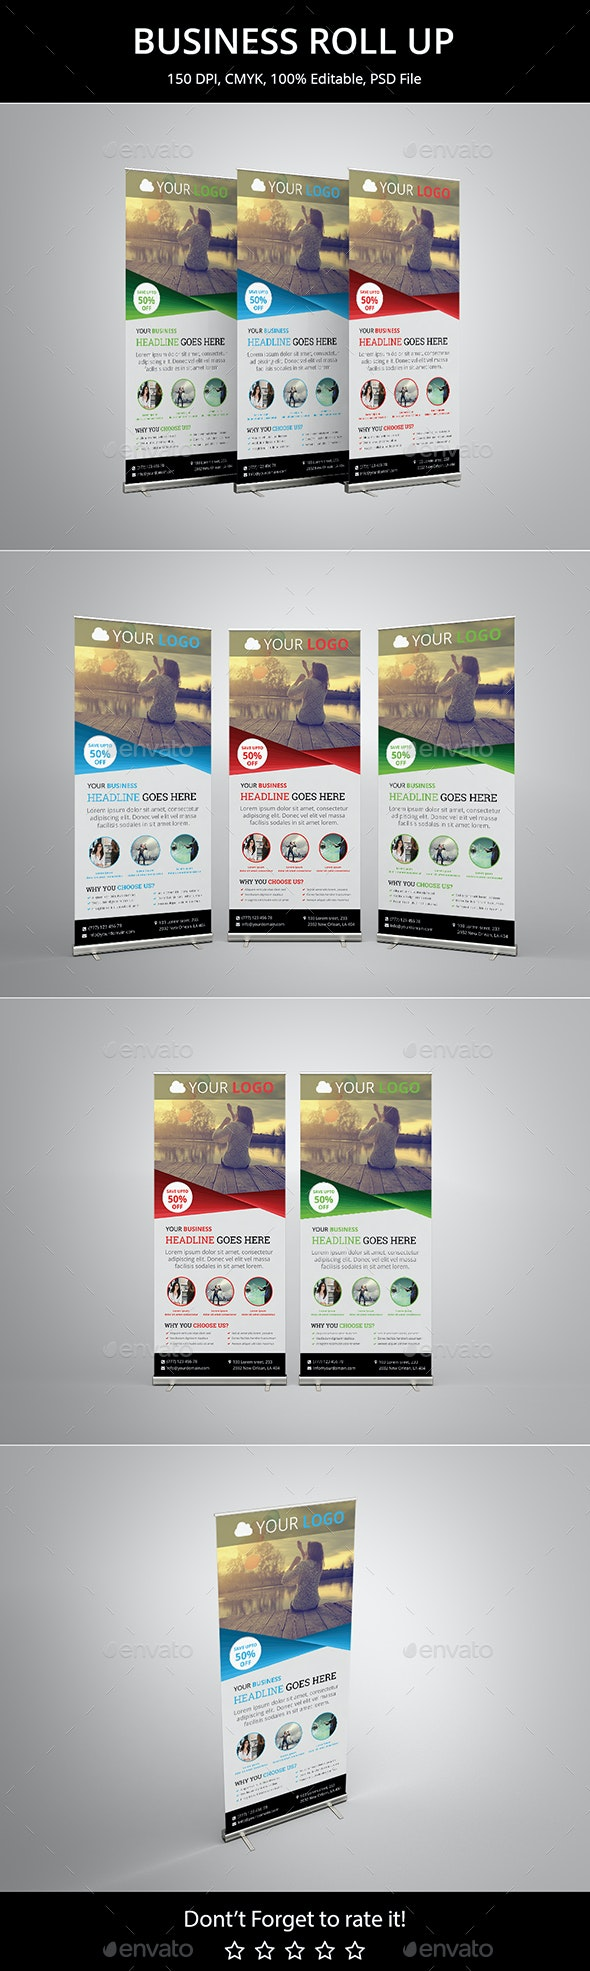 Business Roll up v5 - Signage Print Templates